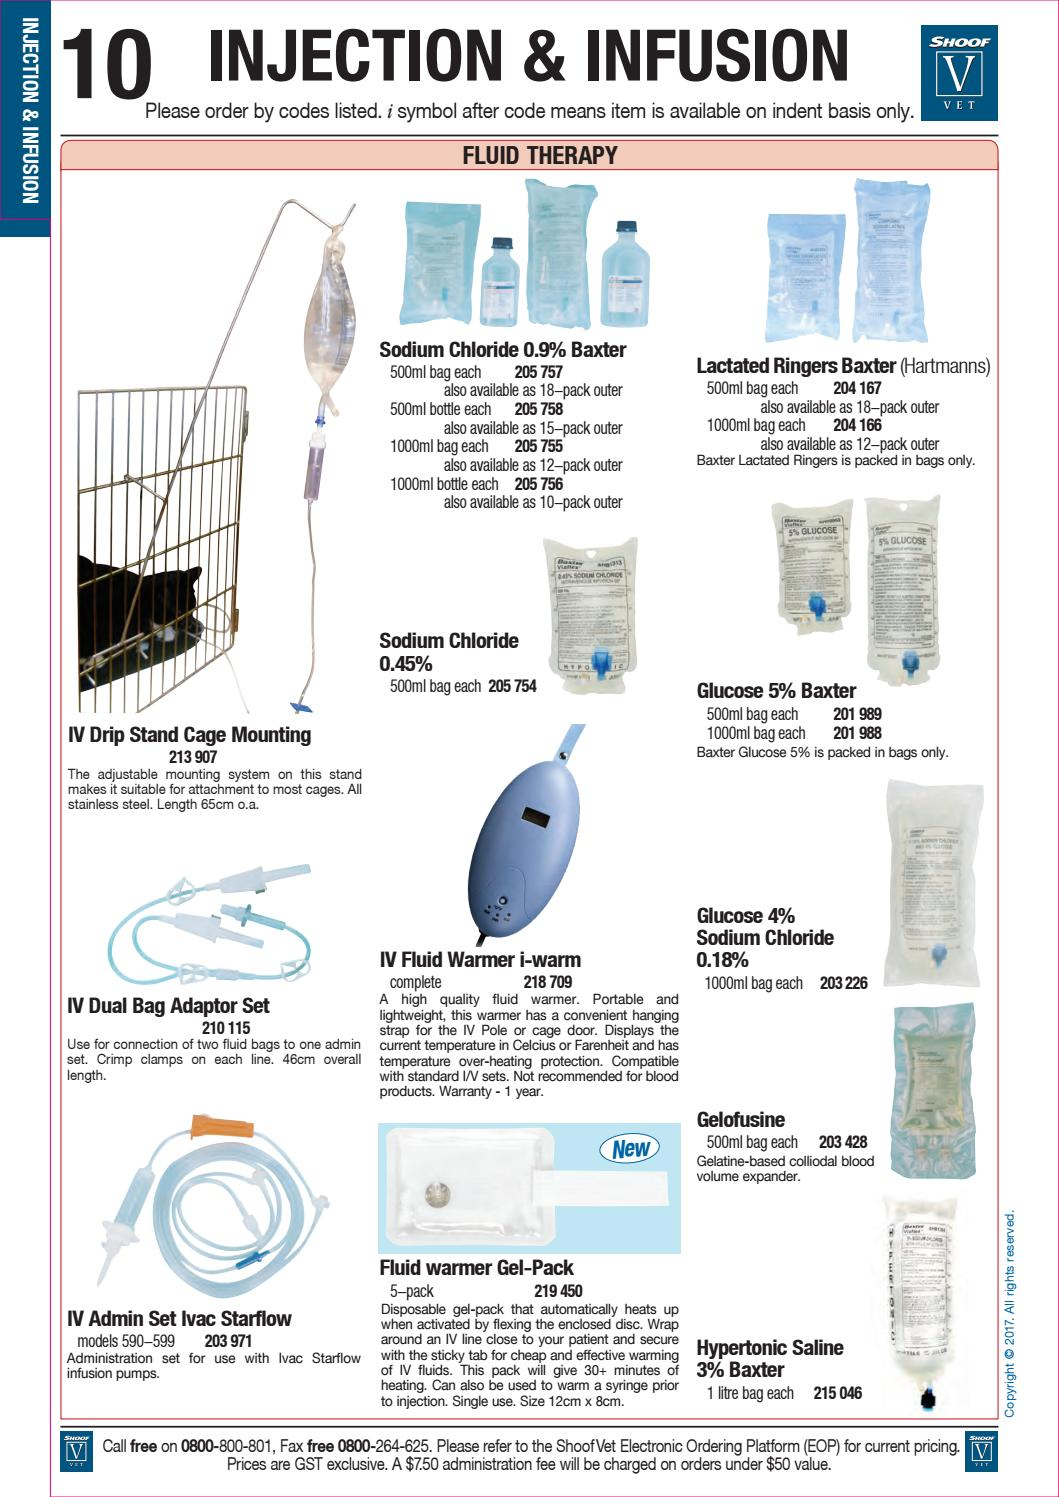 Vet 2017 catalogue by biplab rout (MageDigest) - issuu